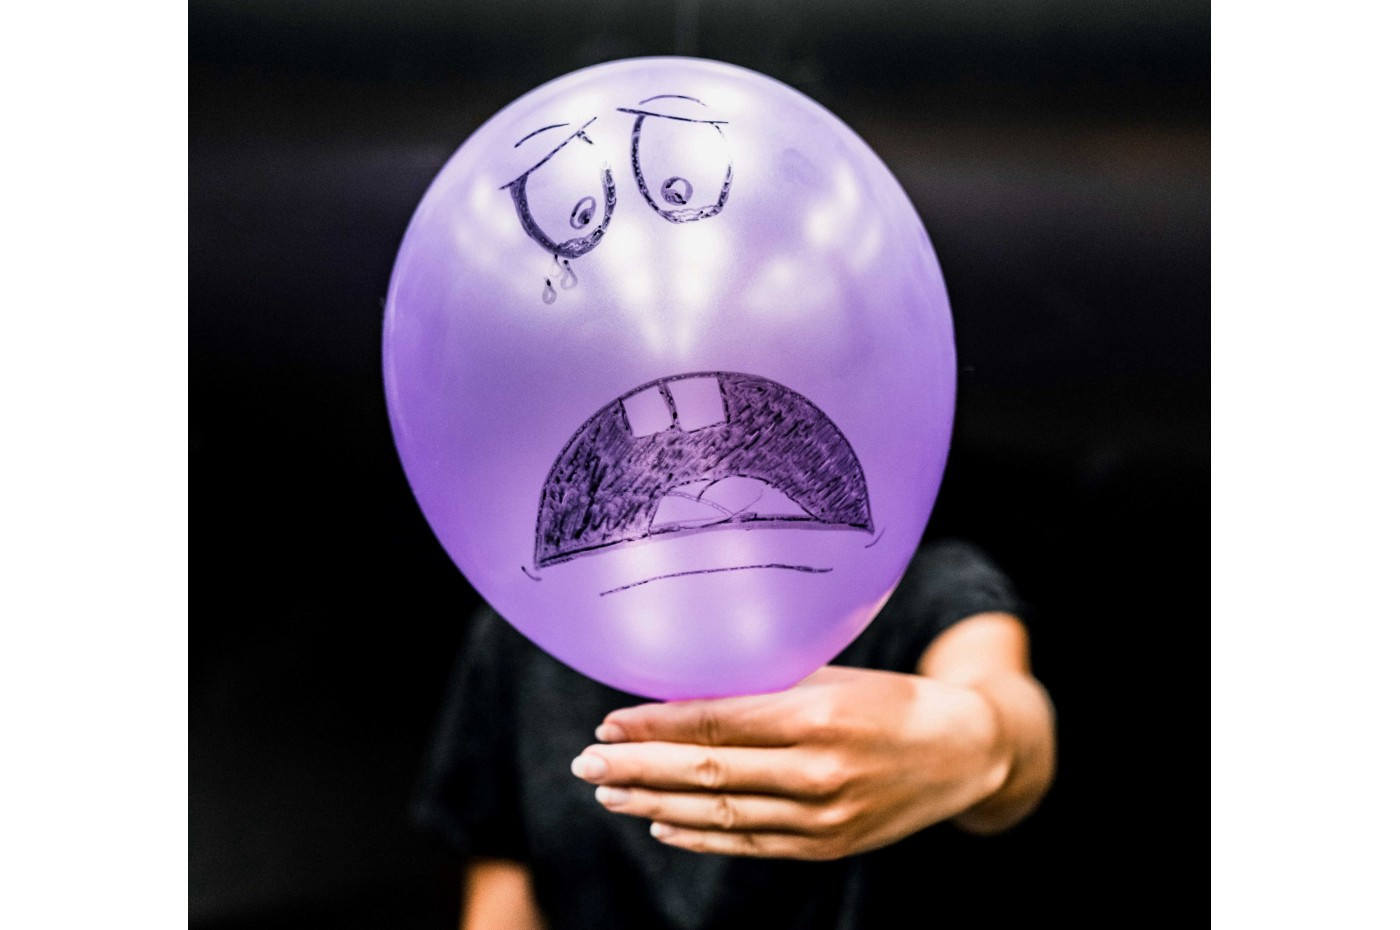 A man holds in front of himself a purple balloon with a crying face drawn on it.